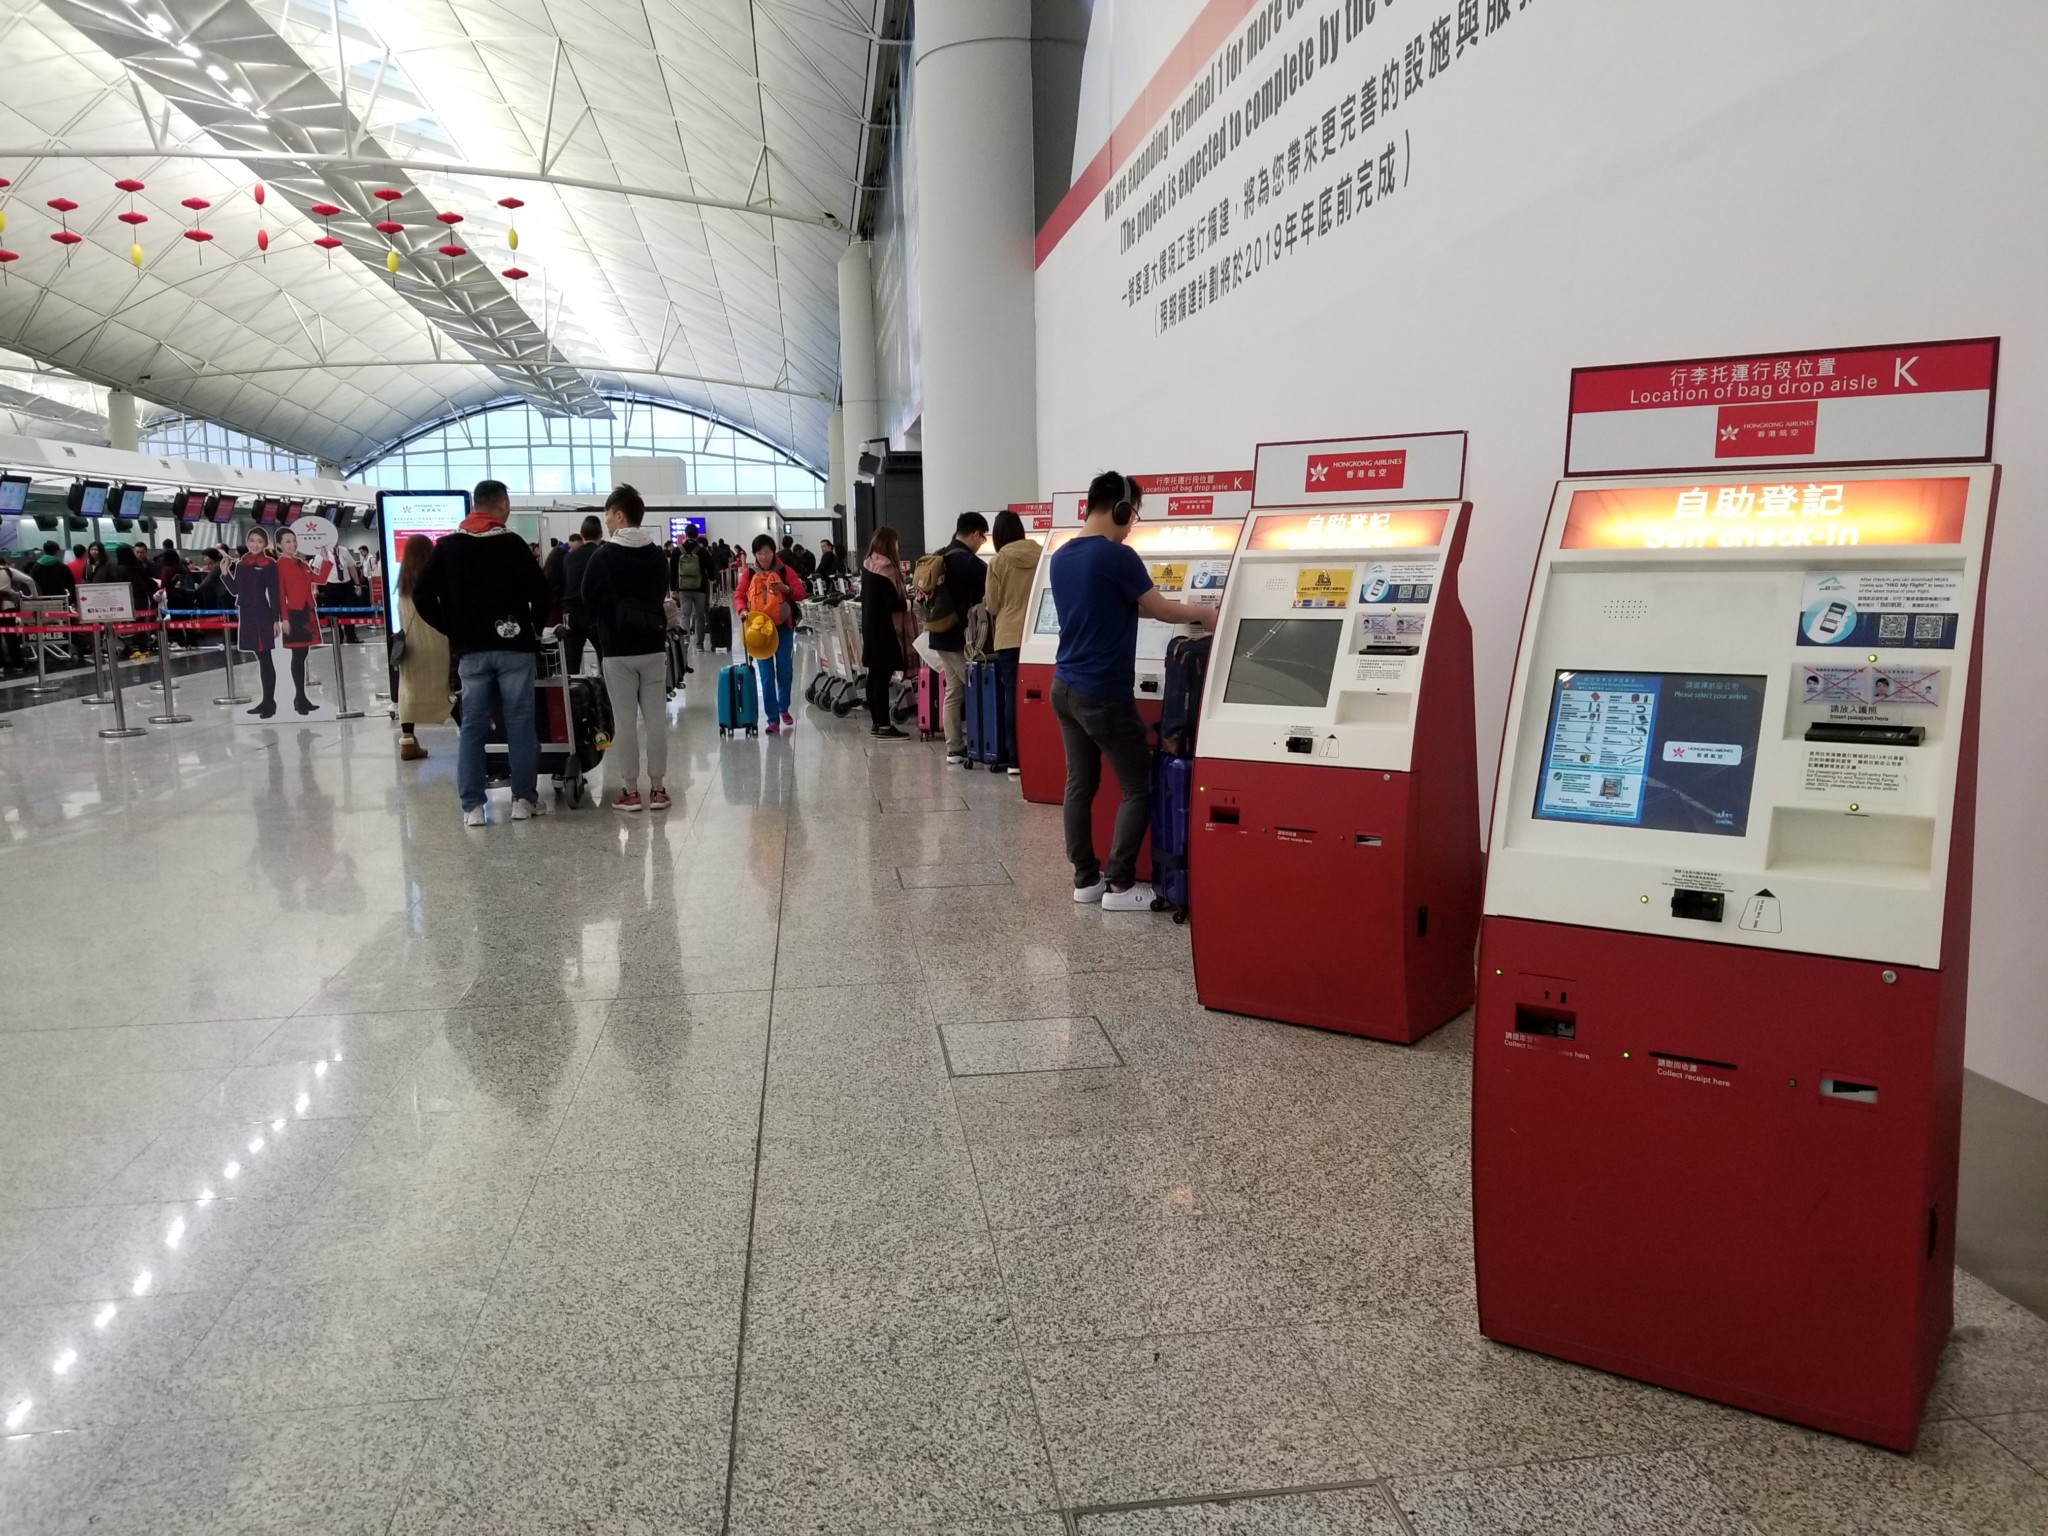 My trip report on Hong Kong Airlines A350-900 Economy